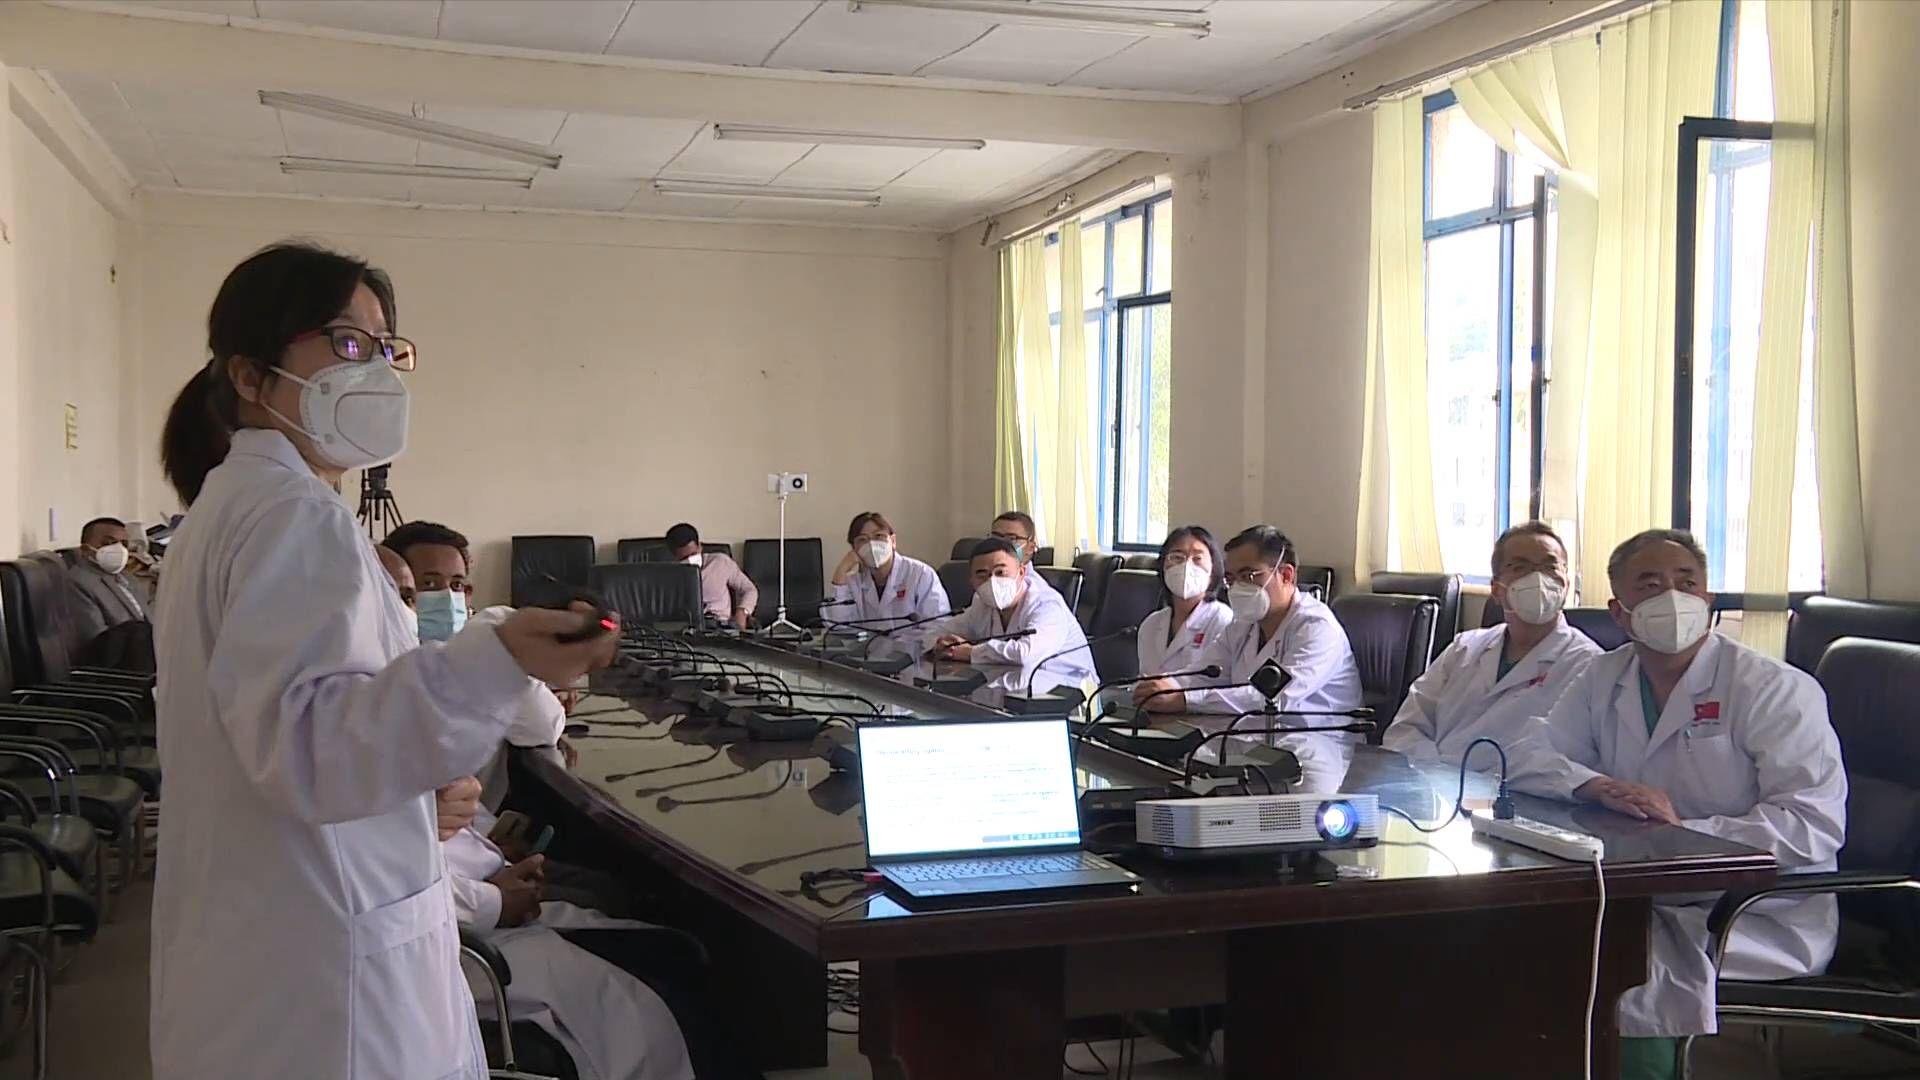 GLOBALink   Chinese medical team provides service to some 20,000 Ethiopian patients in last 9 months